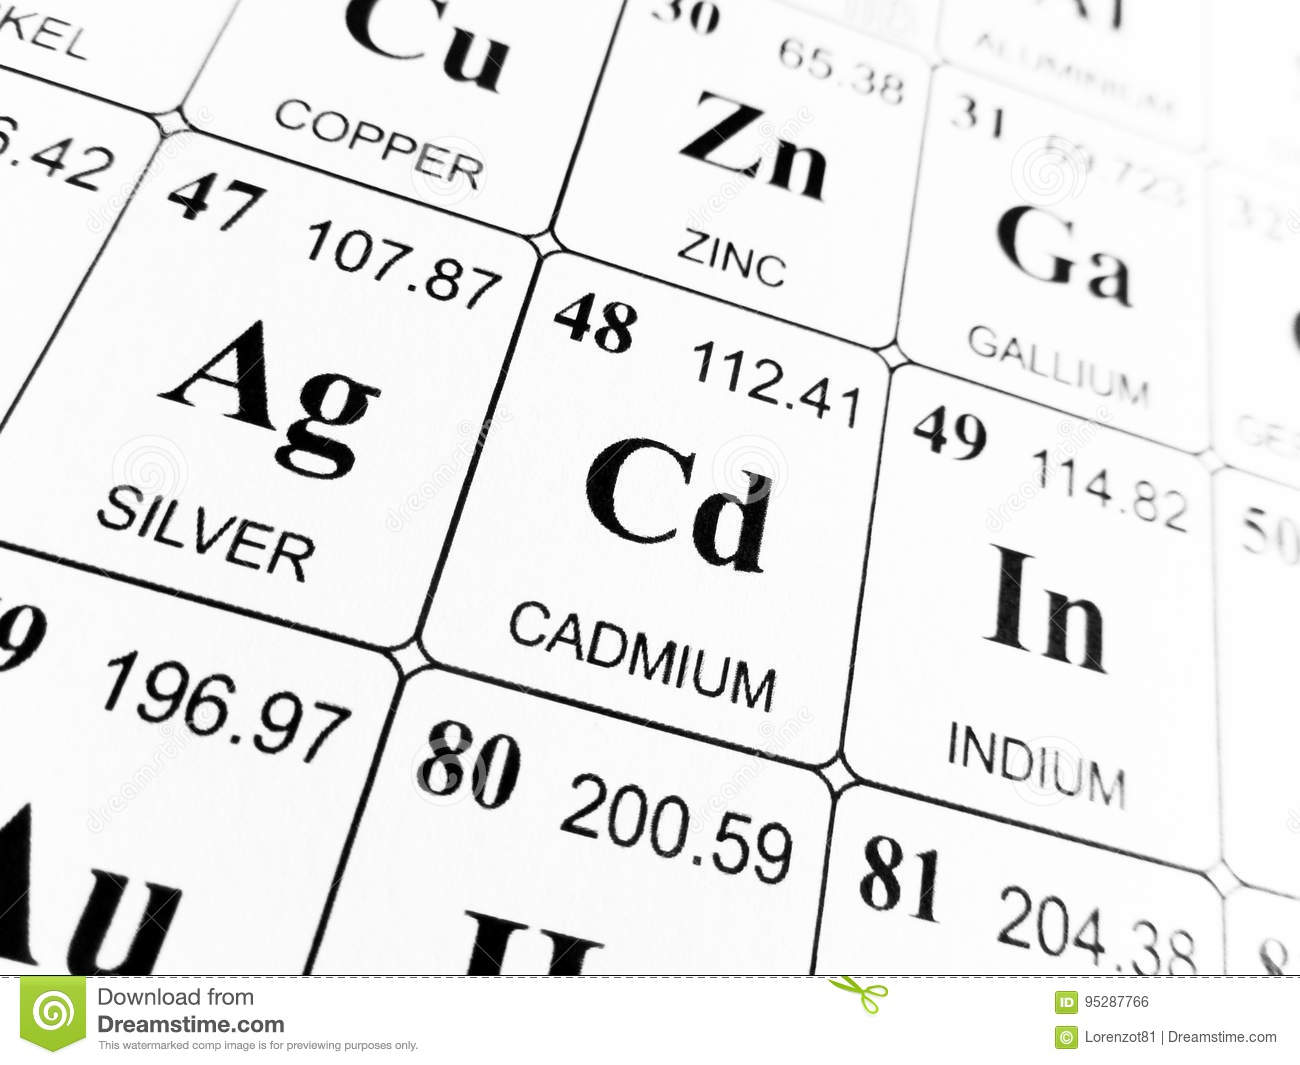 Cadmium On The Periodic Table Of The Elements Stock Photo ...